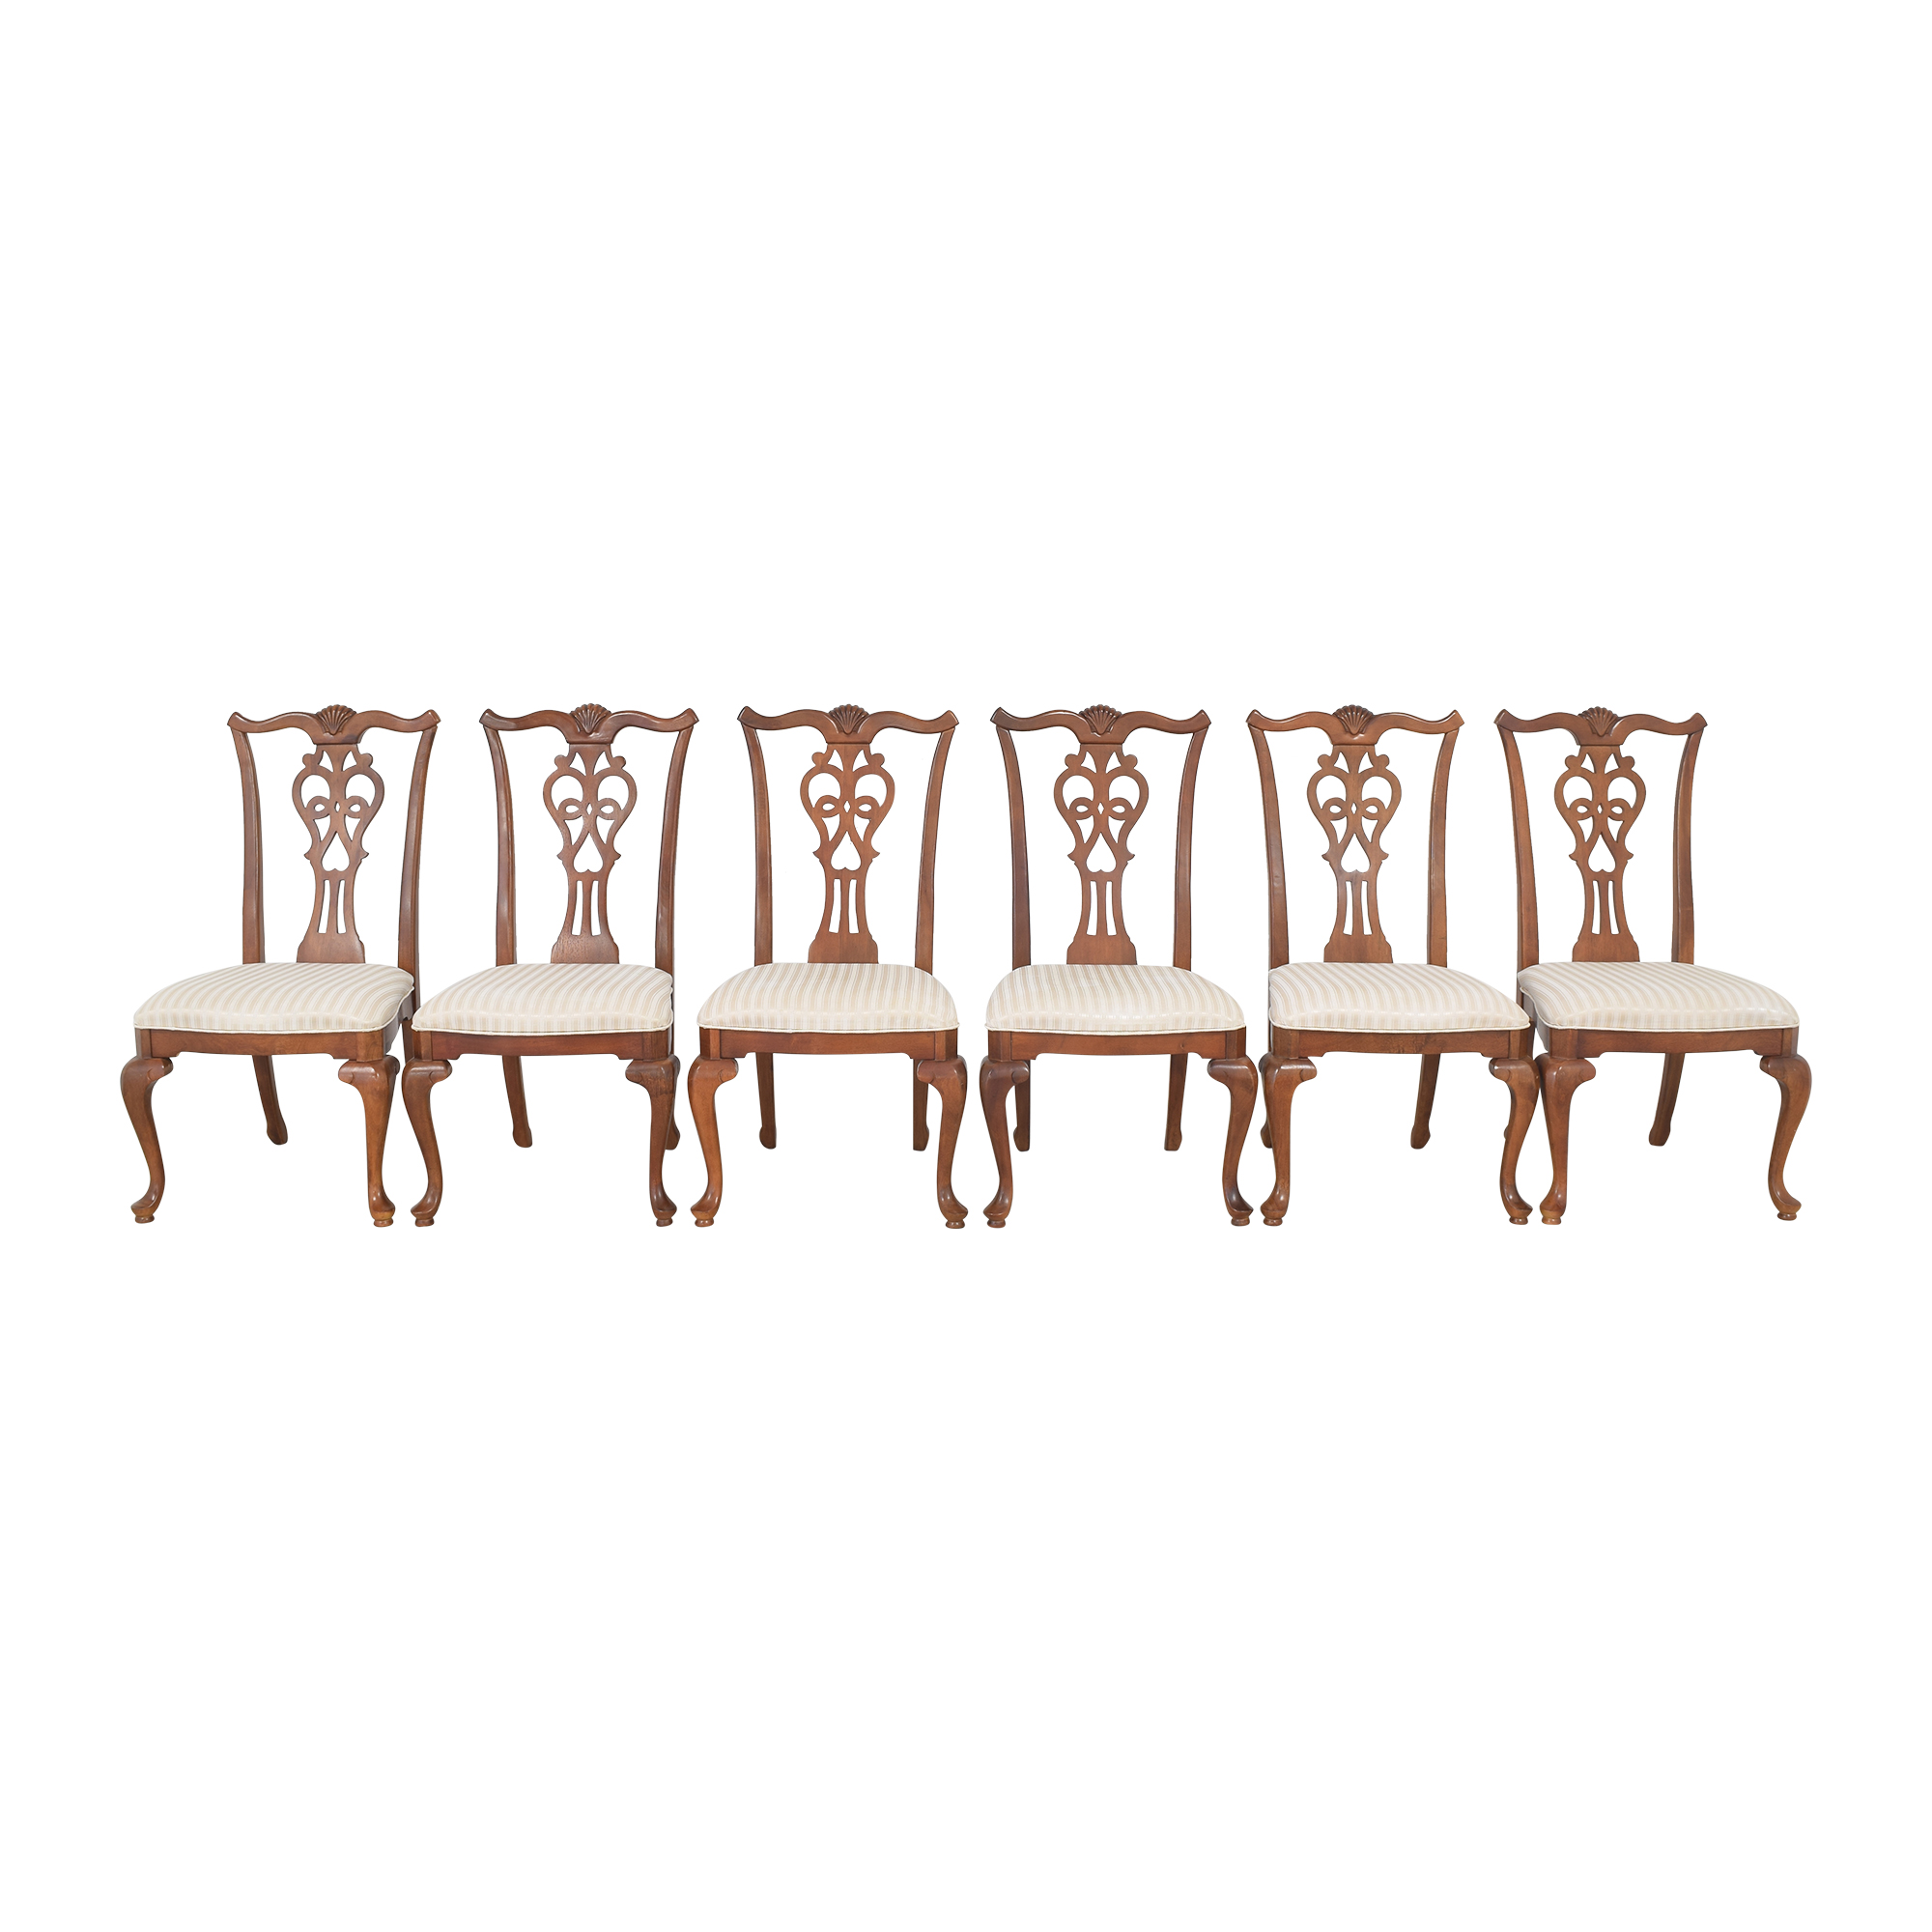 Universal Furniture Universal Furniture Upholstered Dining Chairs nyc